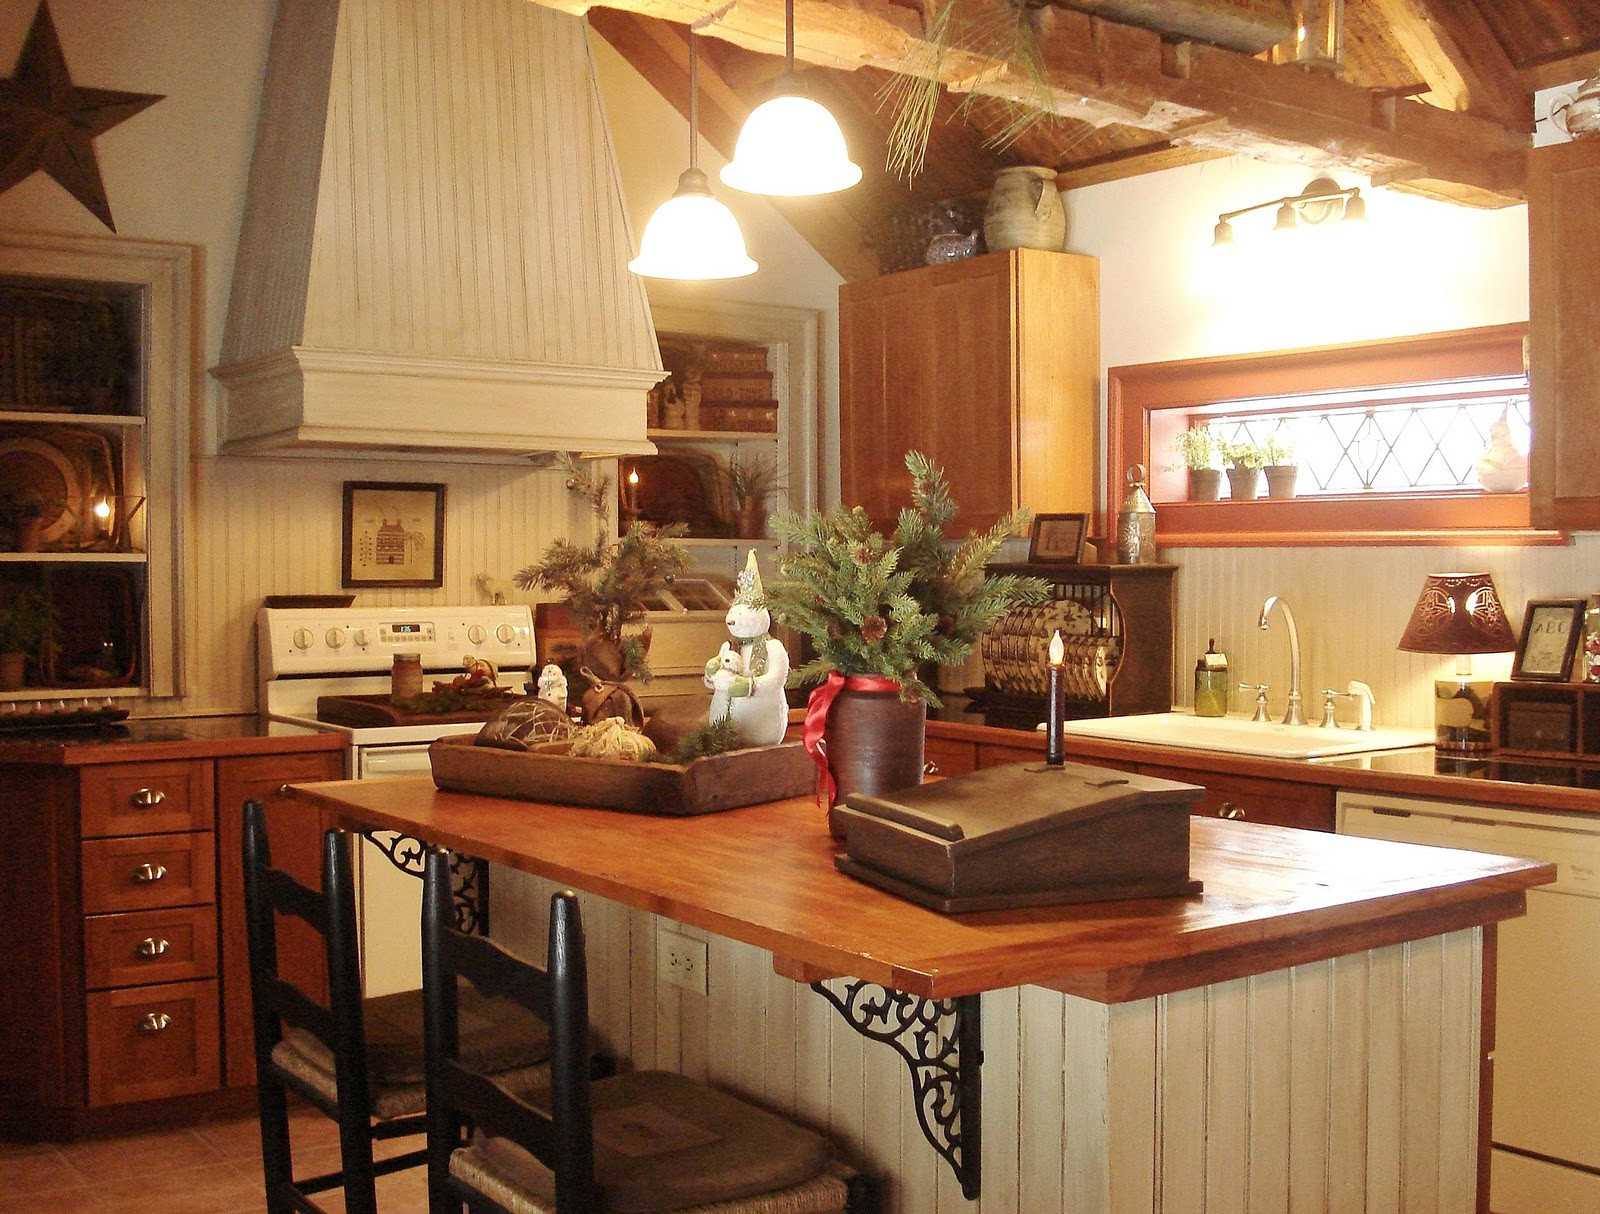 Best ideas about Pinterest Kitchen Decorating . Save or Pin A Primitive Place & Country Journal Magazine Holiday 2011 Now.